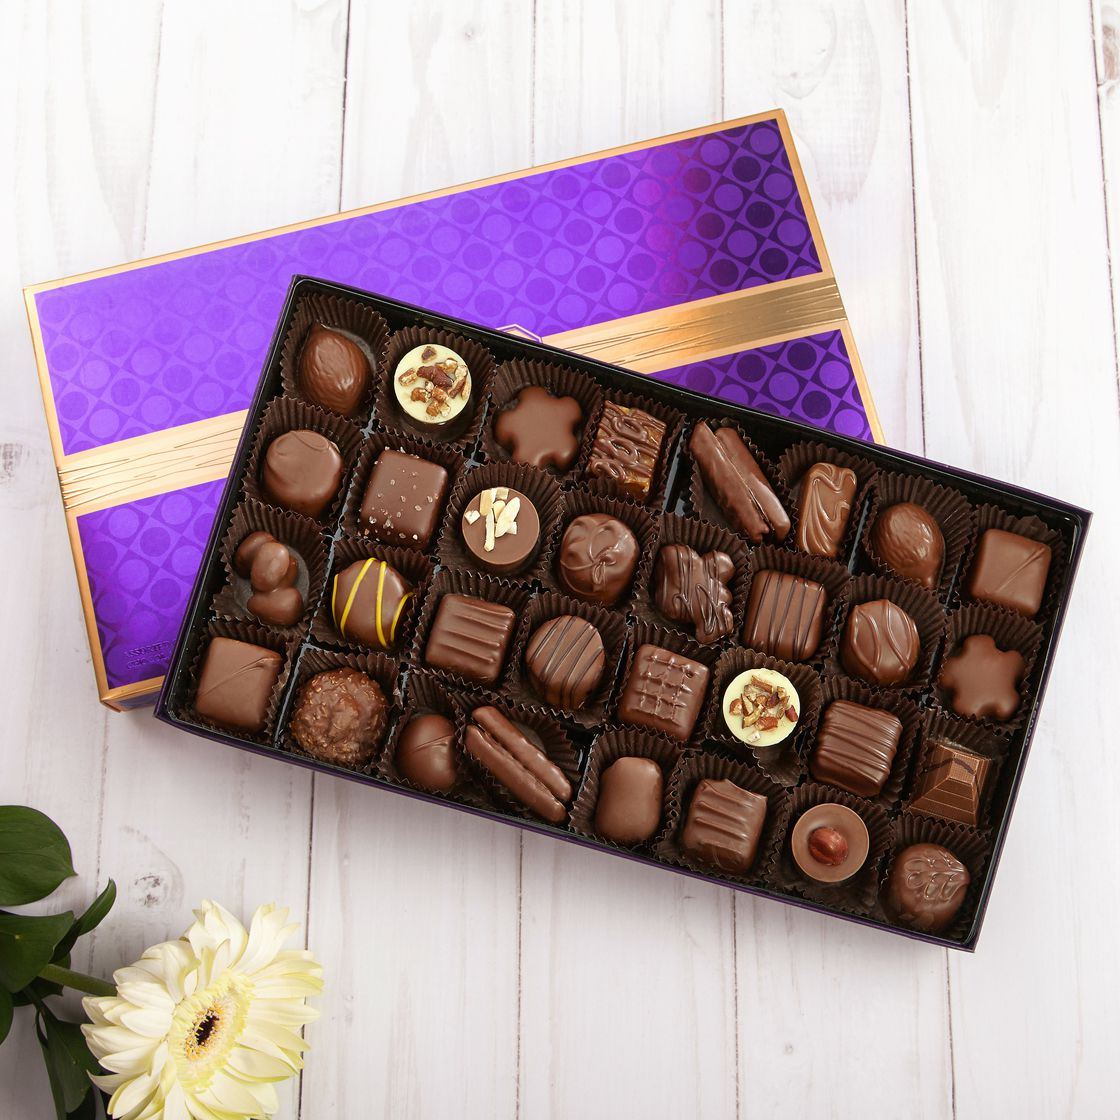 Purdys Chocolate Shopping Guide